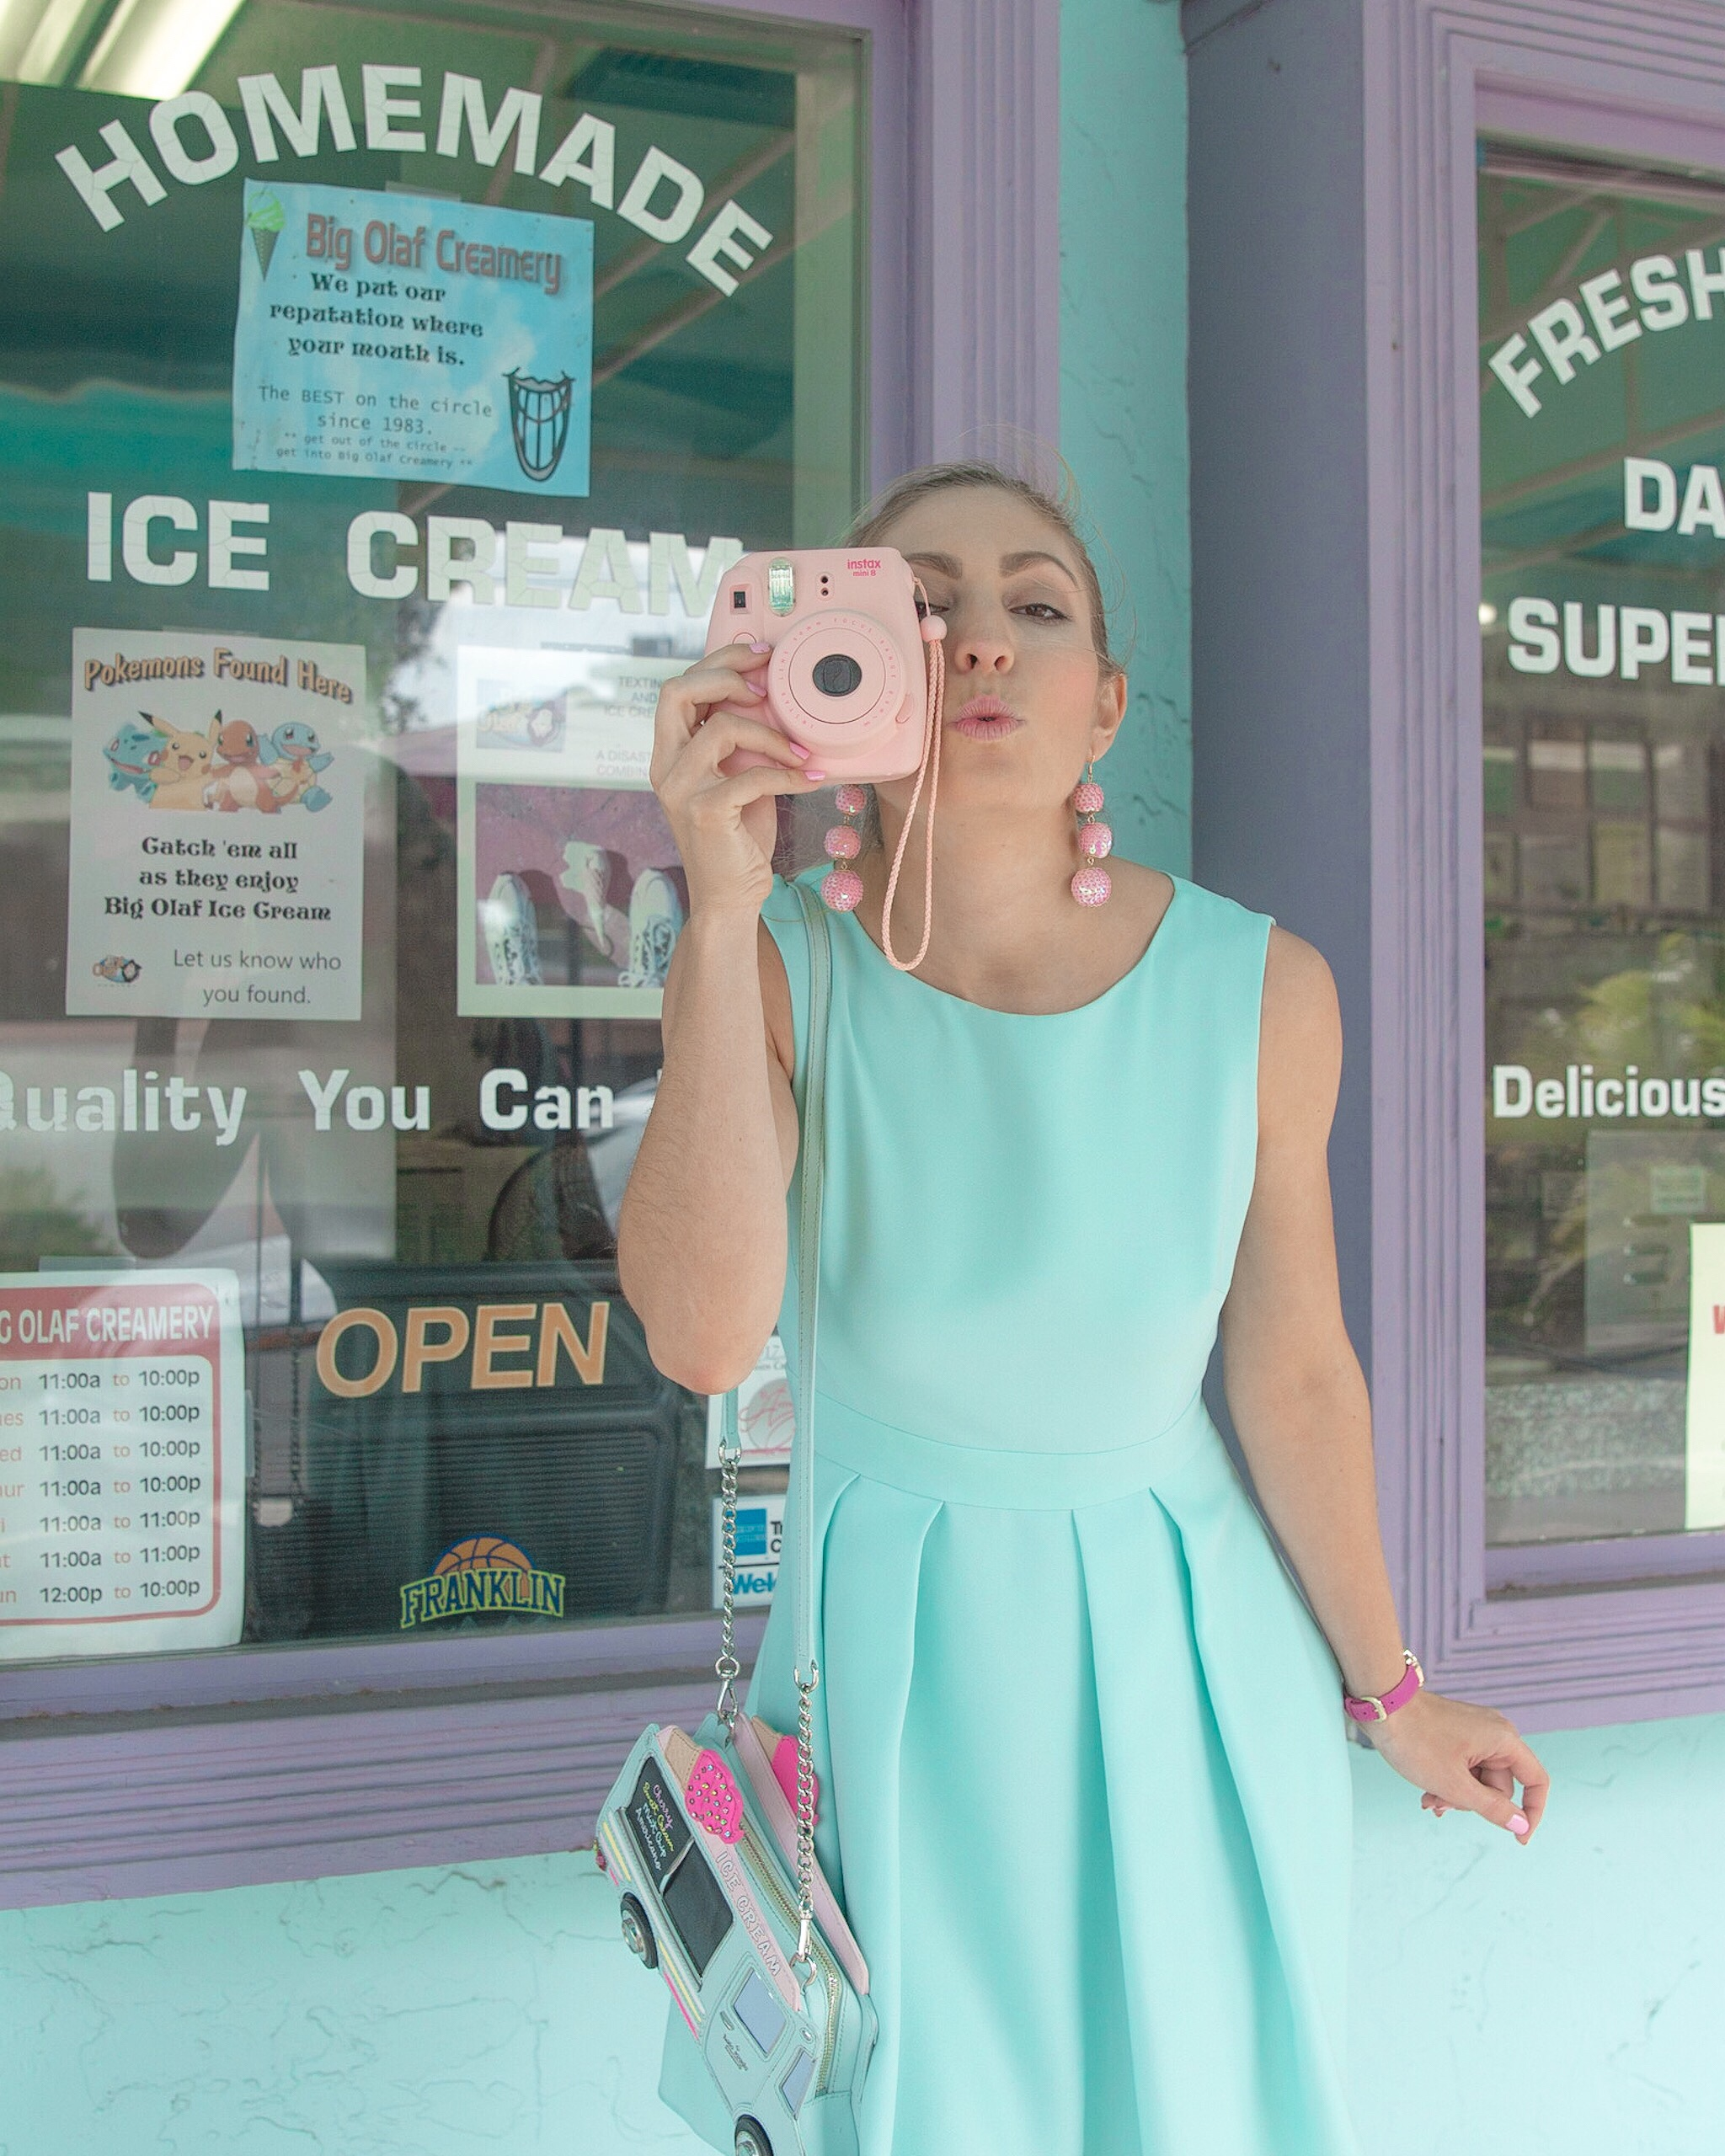 KATE SPADE SCREAMS FOR ICE CREAM